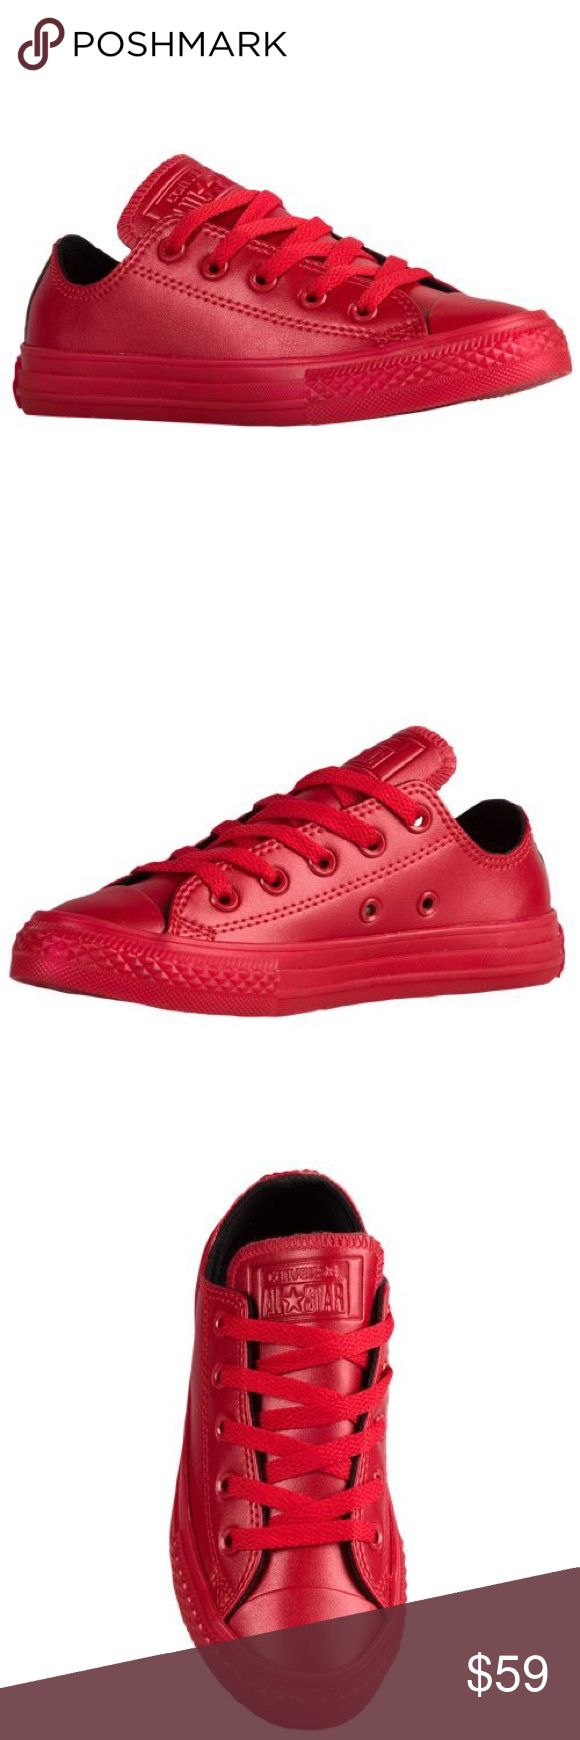 CONVERSE ALL RED WOMENS SIZE 7 SHOES NEW Shoes are a size 5 juniors which is a women's size 7. Brand new without box. Converse Shoes Sneakers